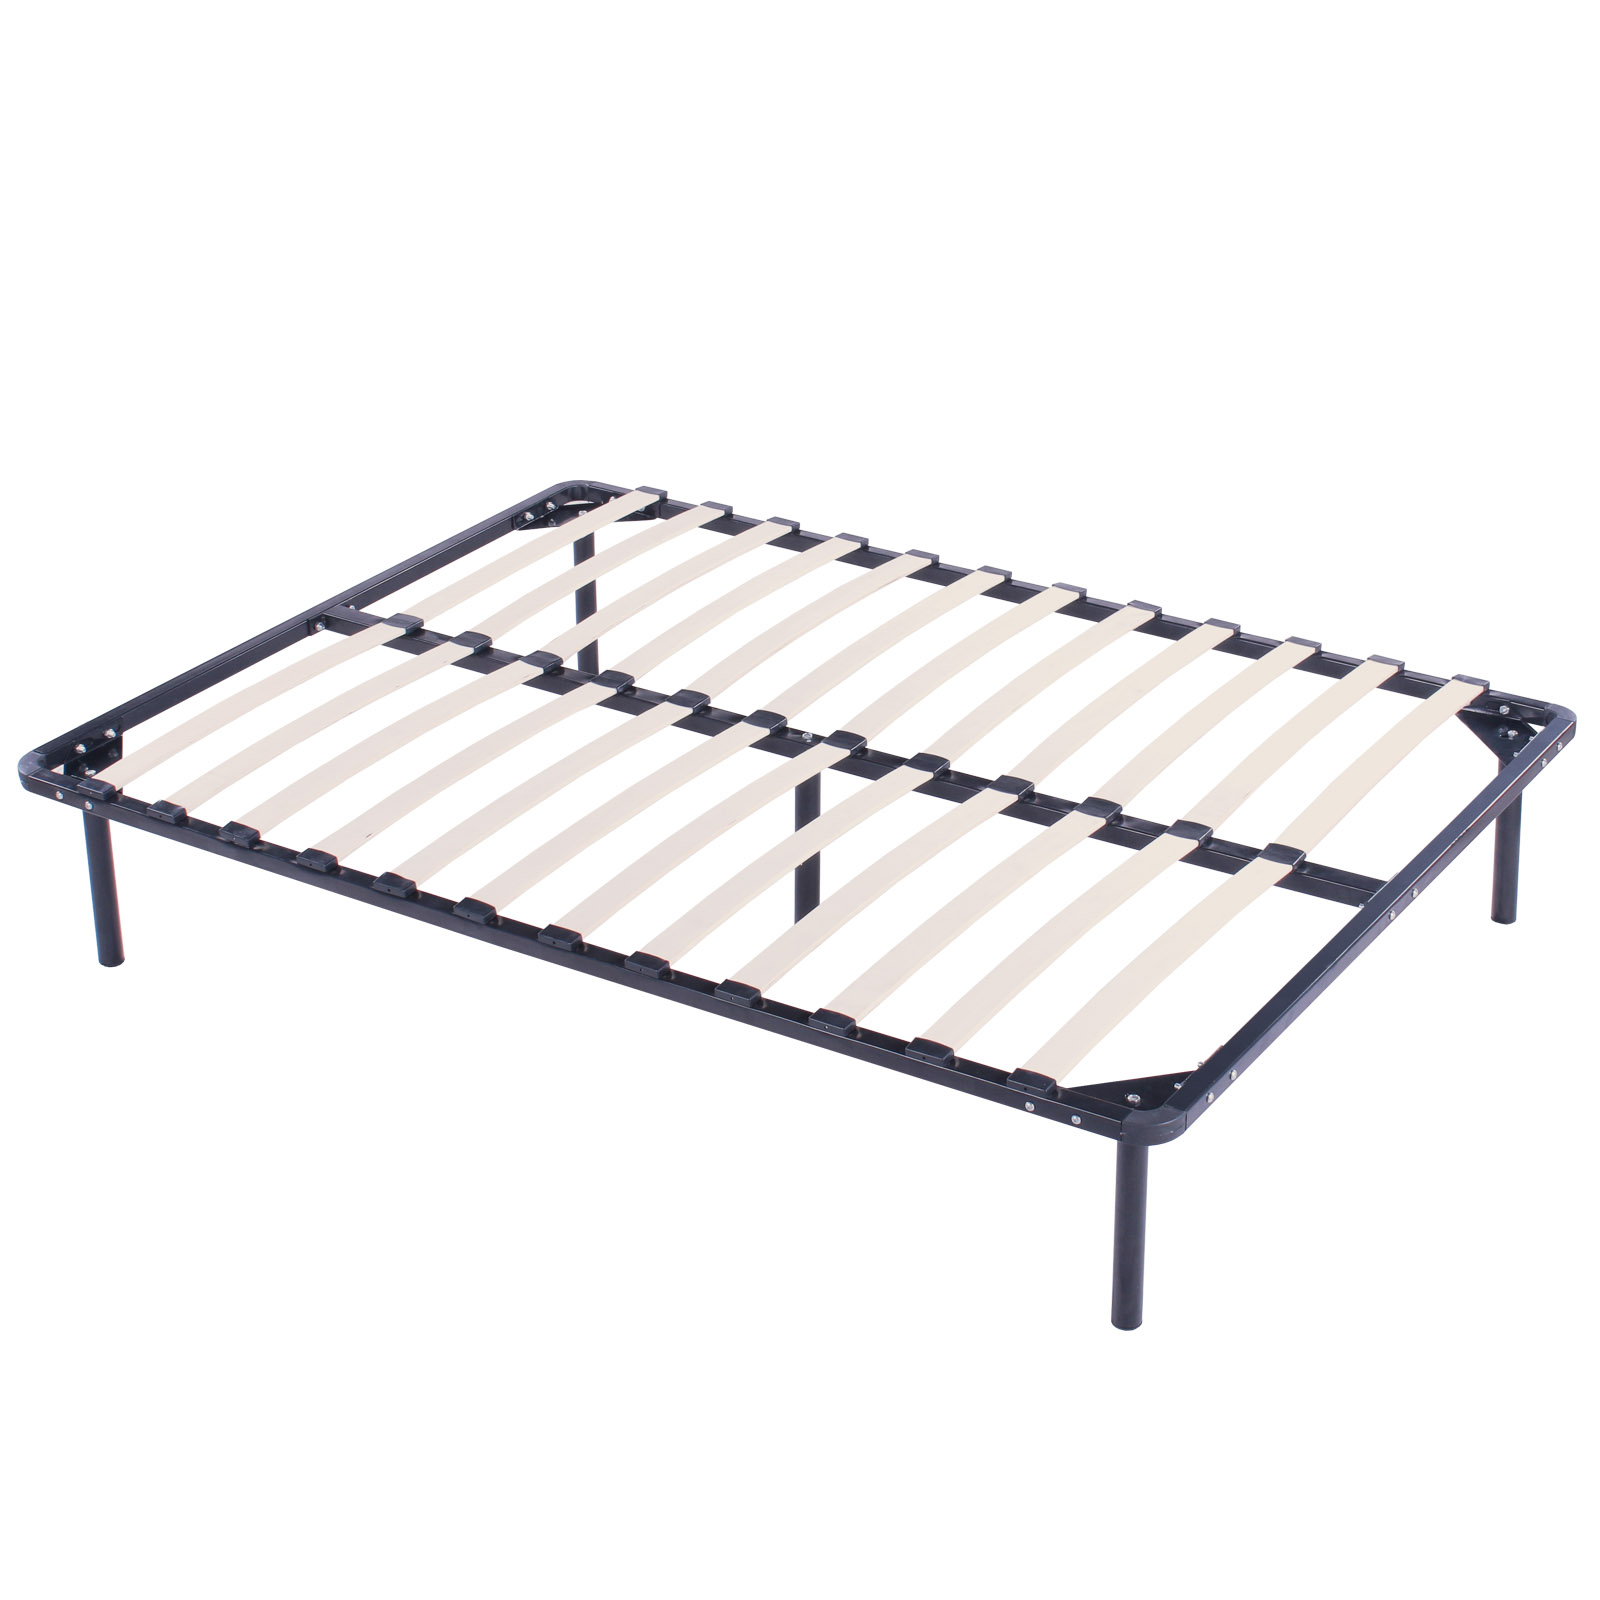 Wood Slats Metal Bed Frame Twin Size Sturdy Foundation